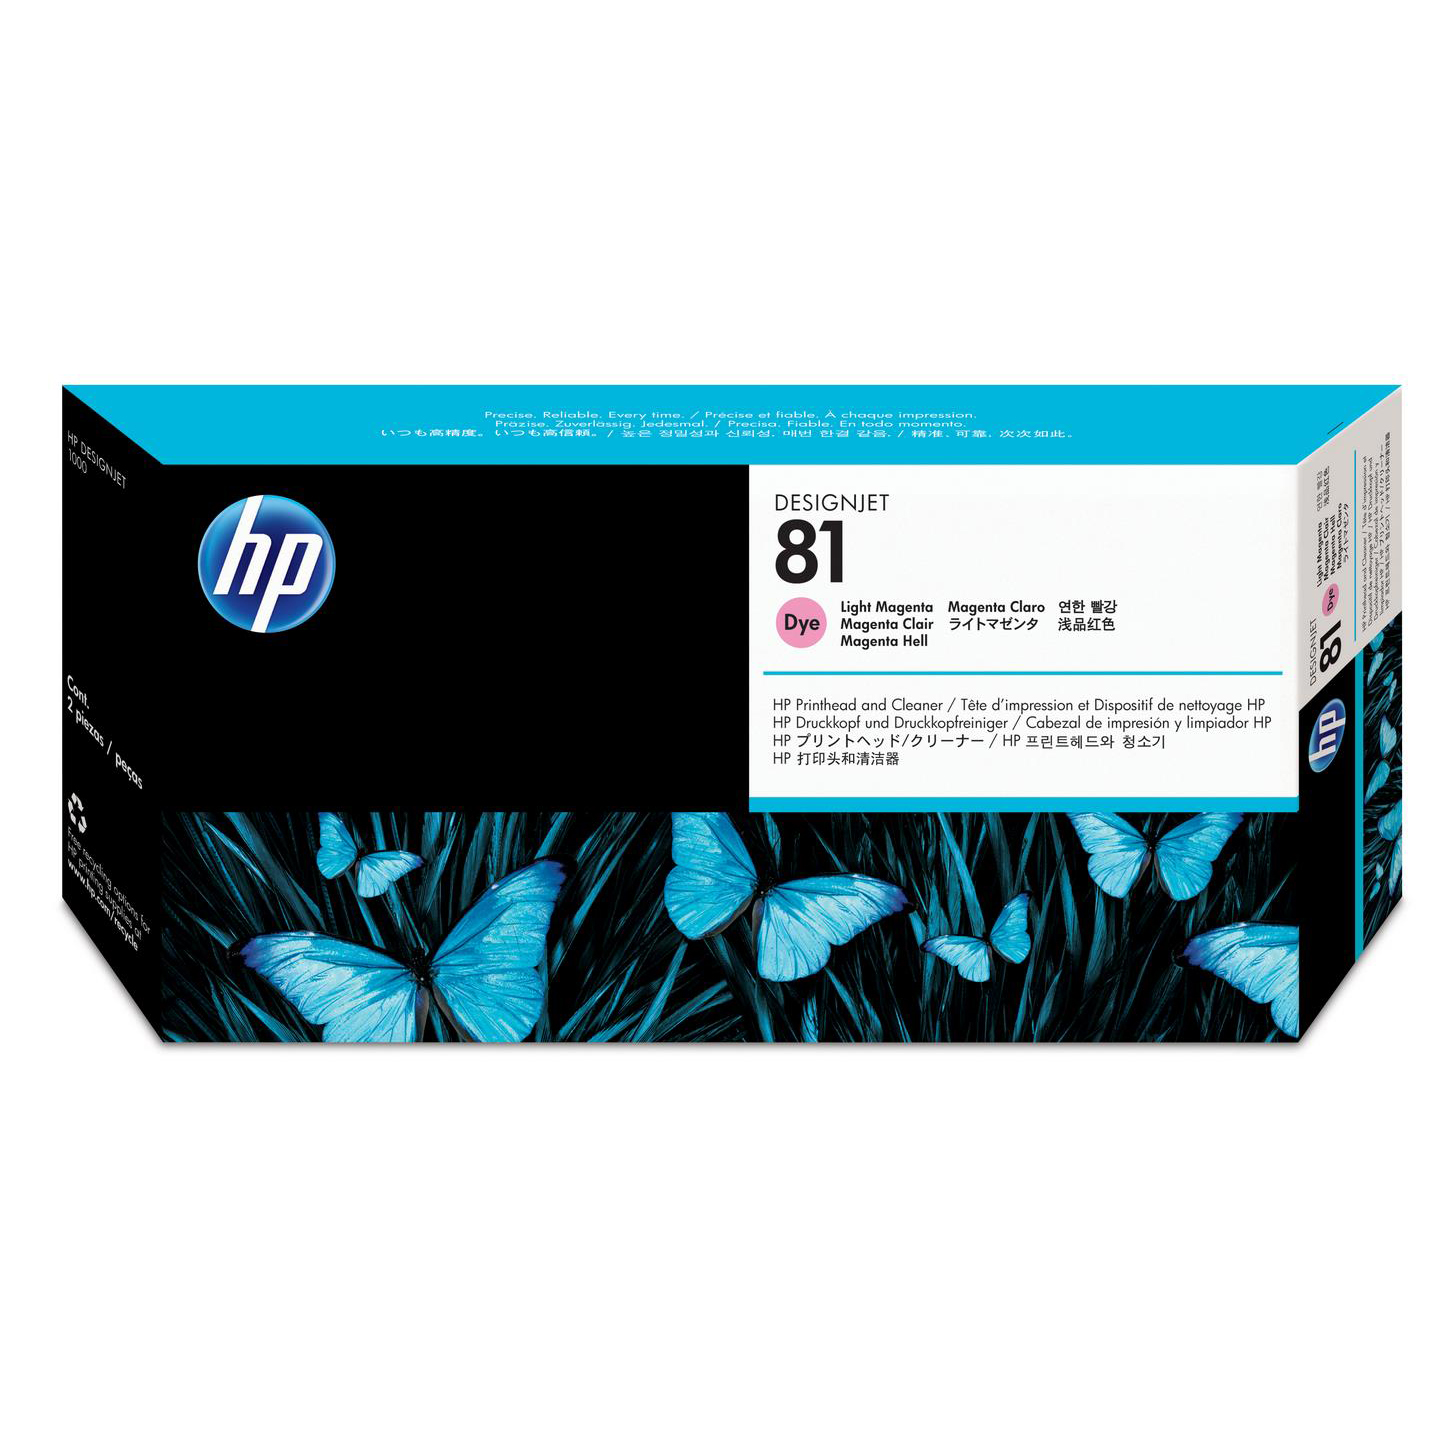 Hewlett Packard HP No.81 Printhead & Printhead Cleaner Light Magenta Ref C4955A *3to5 Day Leadtime*